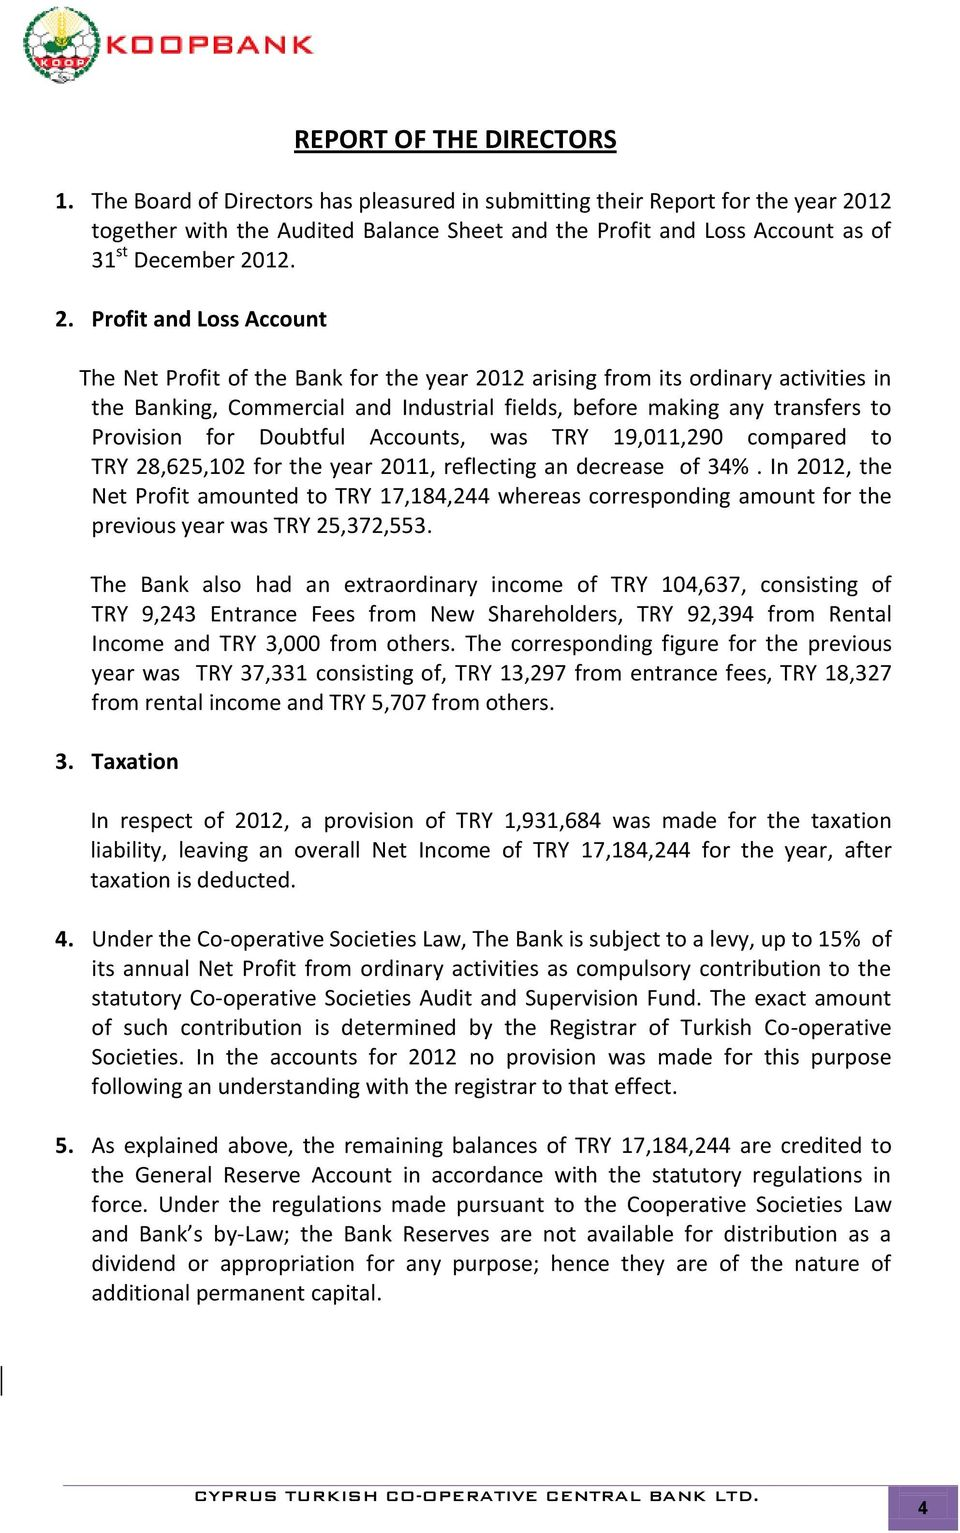 12 together with the Audited Balance Sheet and the Profit and Loss Account as of 31 st December 20